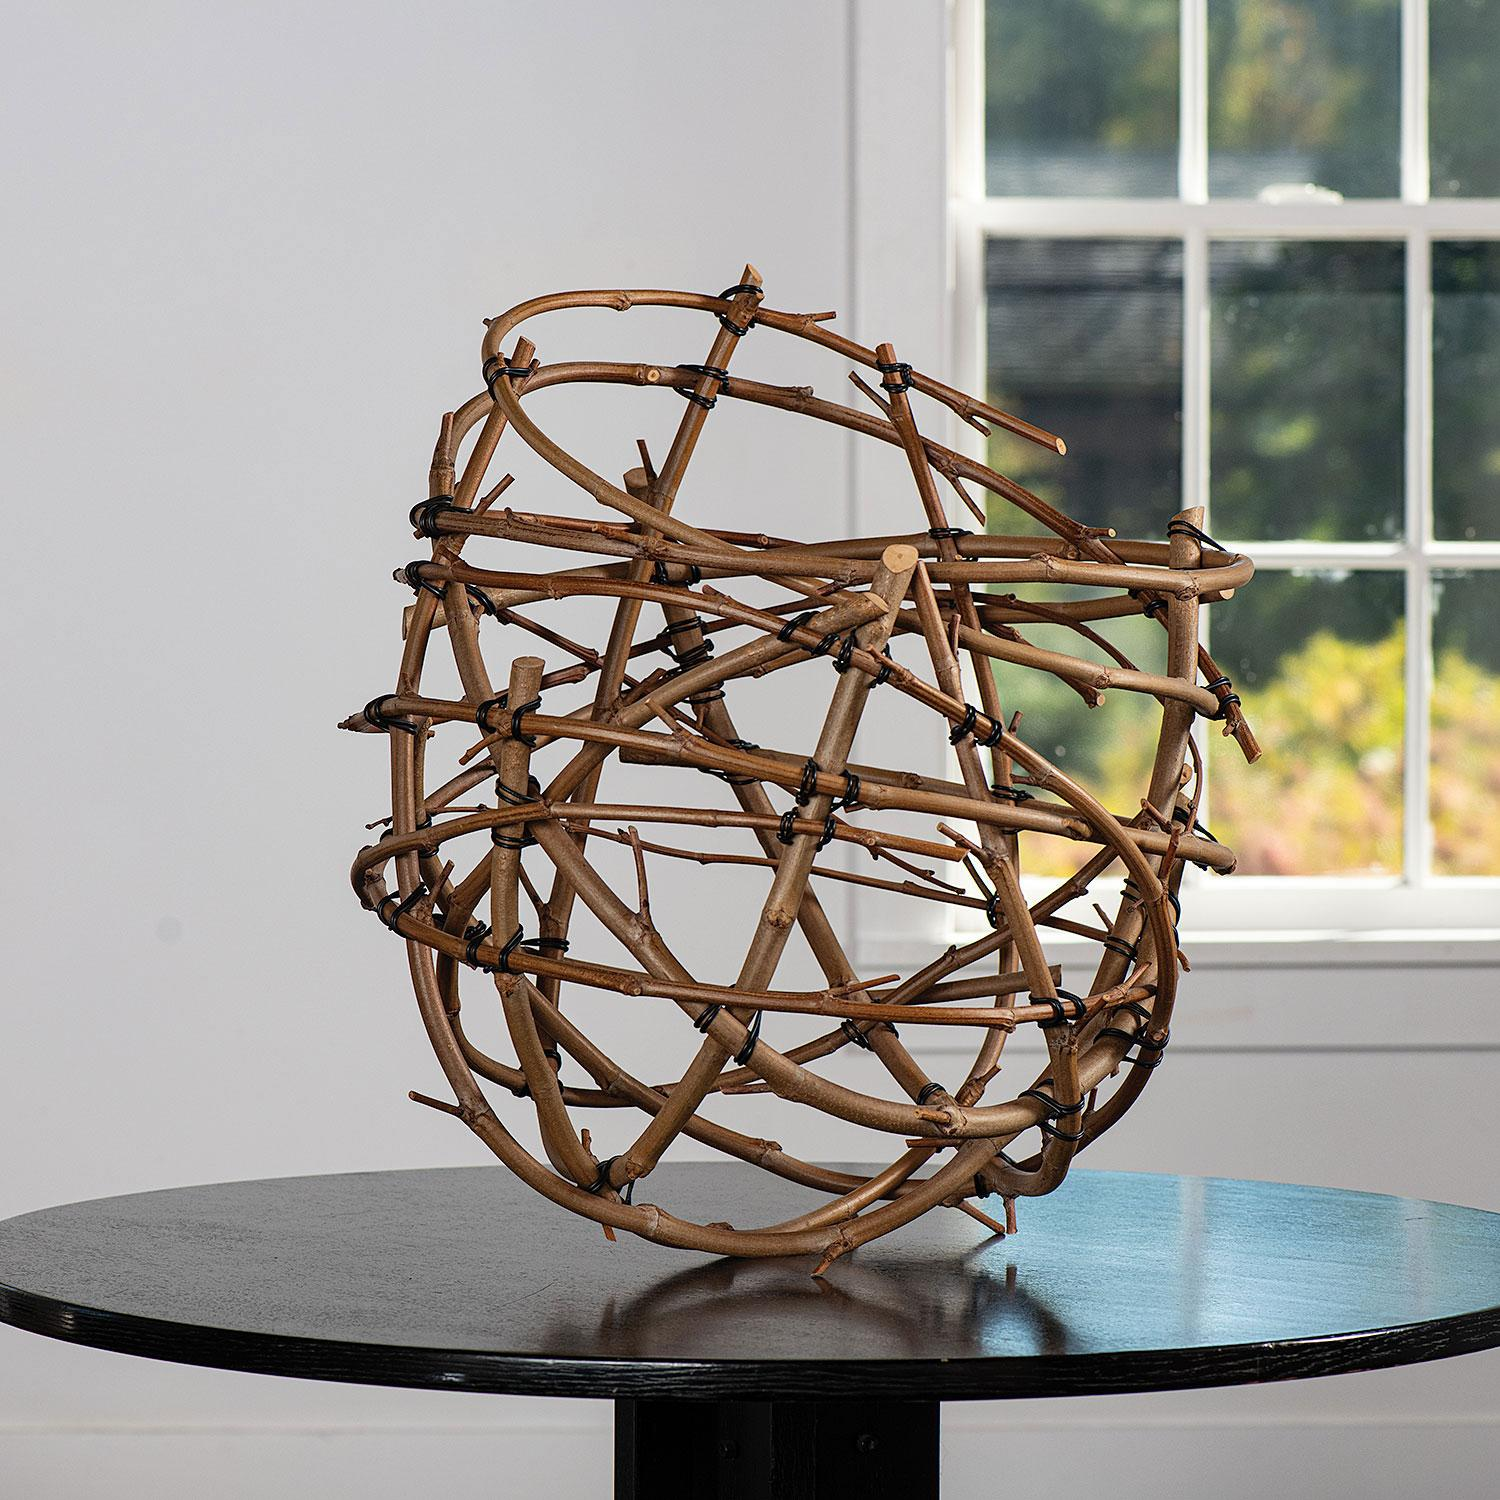 Ribbed Structure, Abstract Vessel Sculpture by Gyöngy Laky